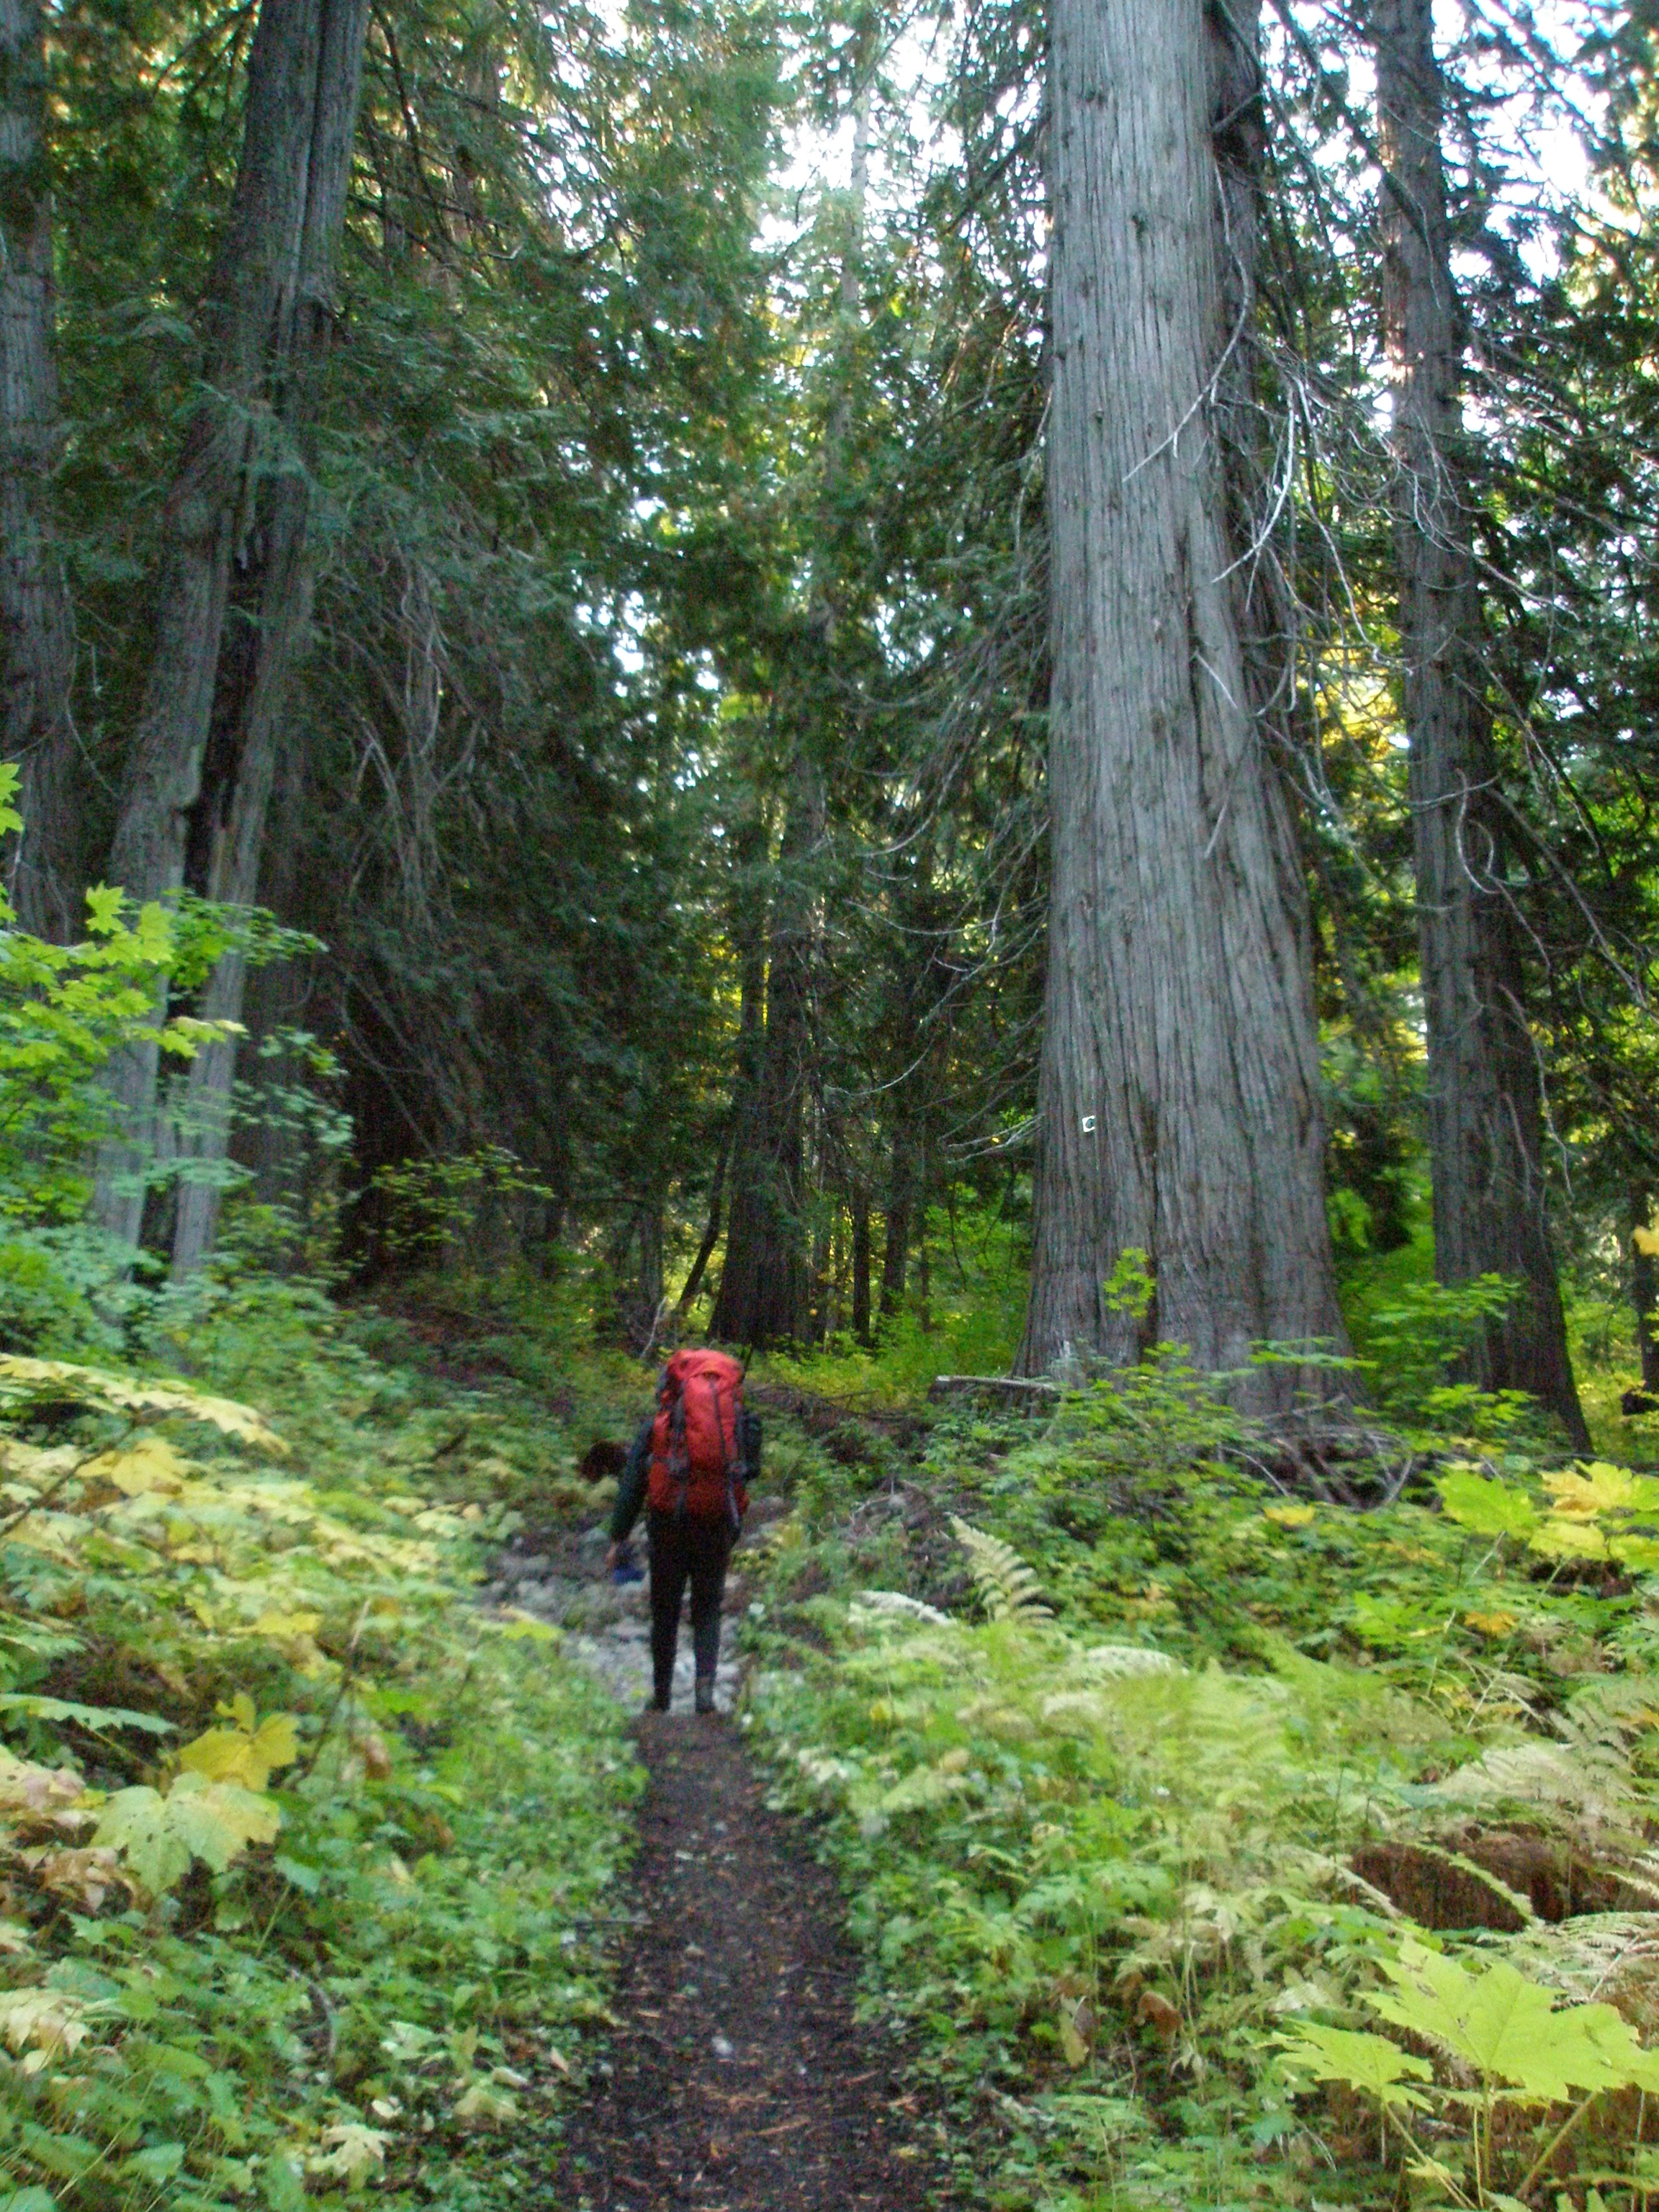 A hiker approaching a western red cedar grove along the Old Wagon (Pacific Crest) Trail.